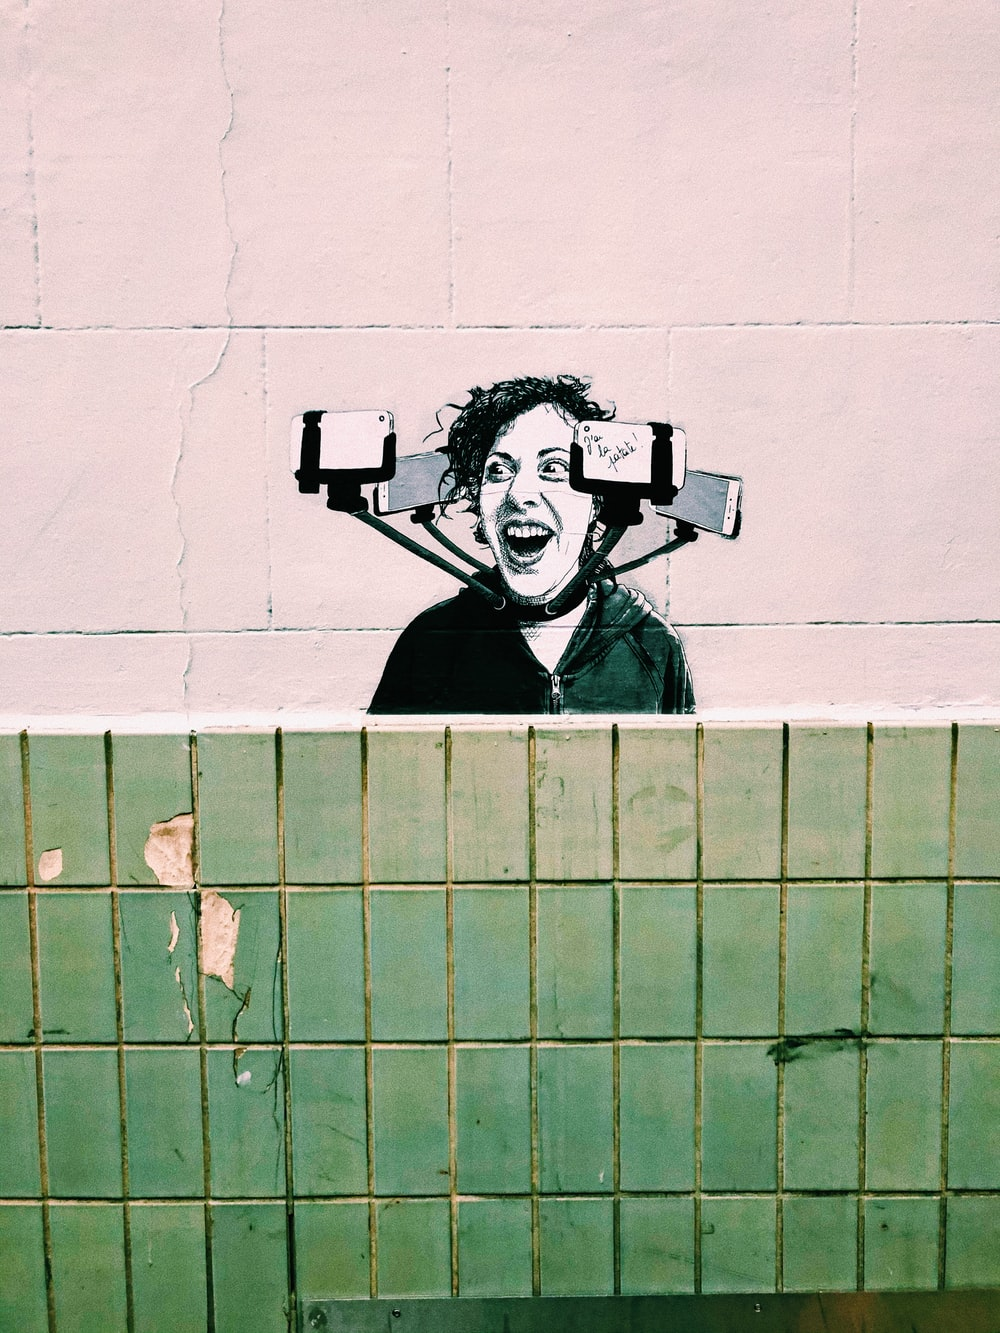 mural painting of woman's face surrounded by smartphones